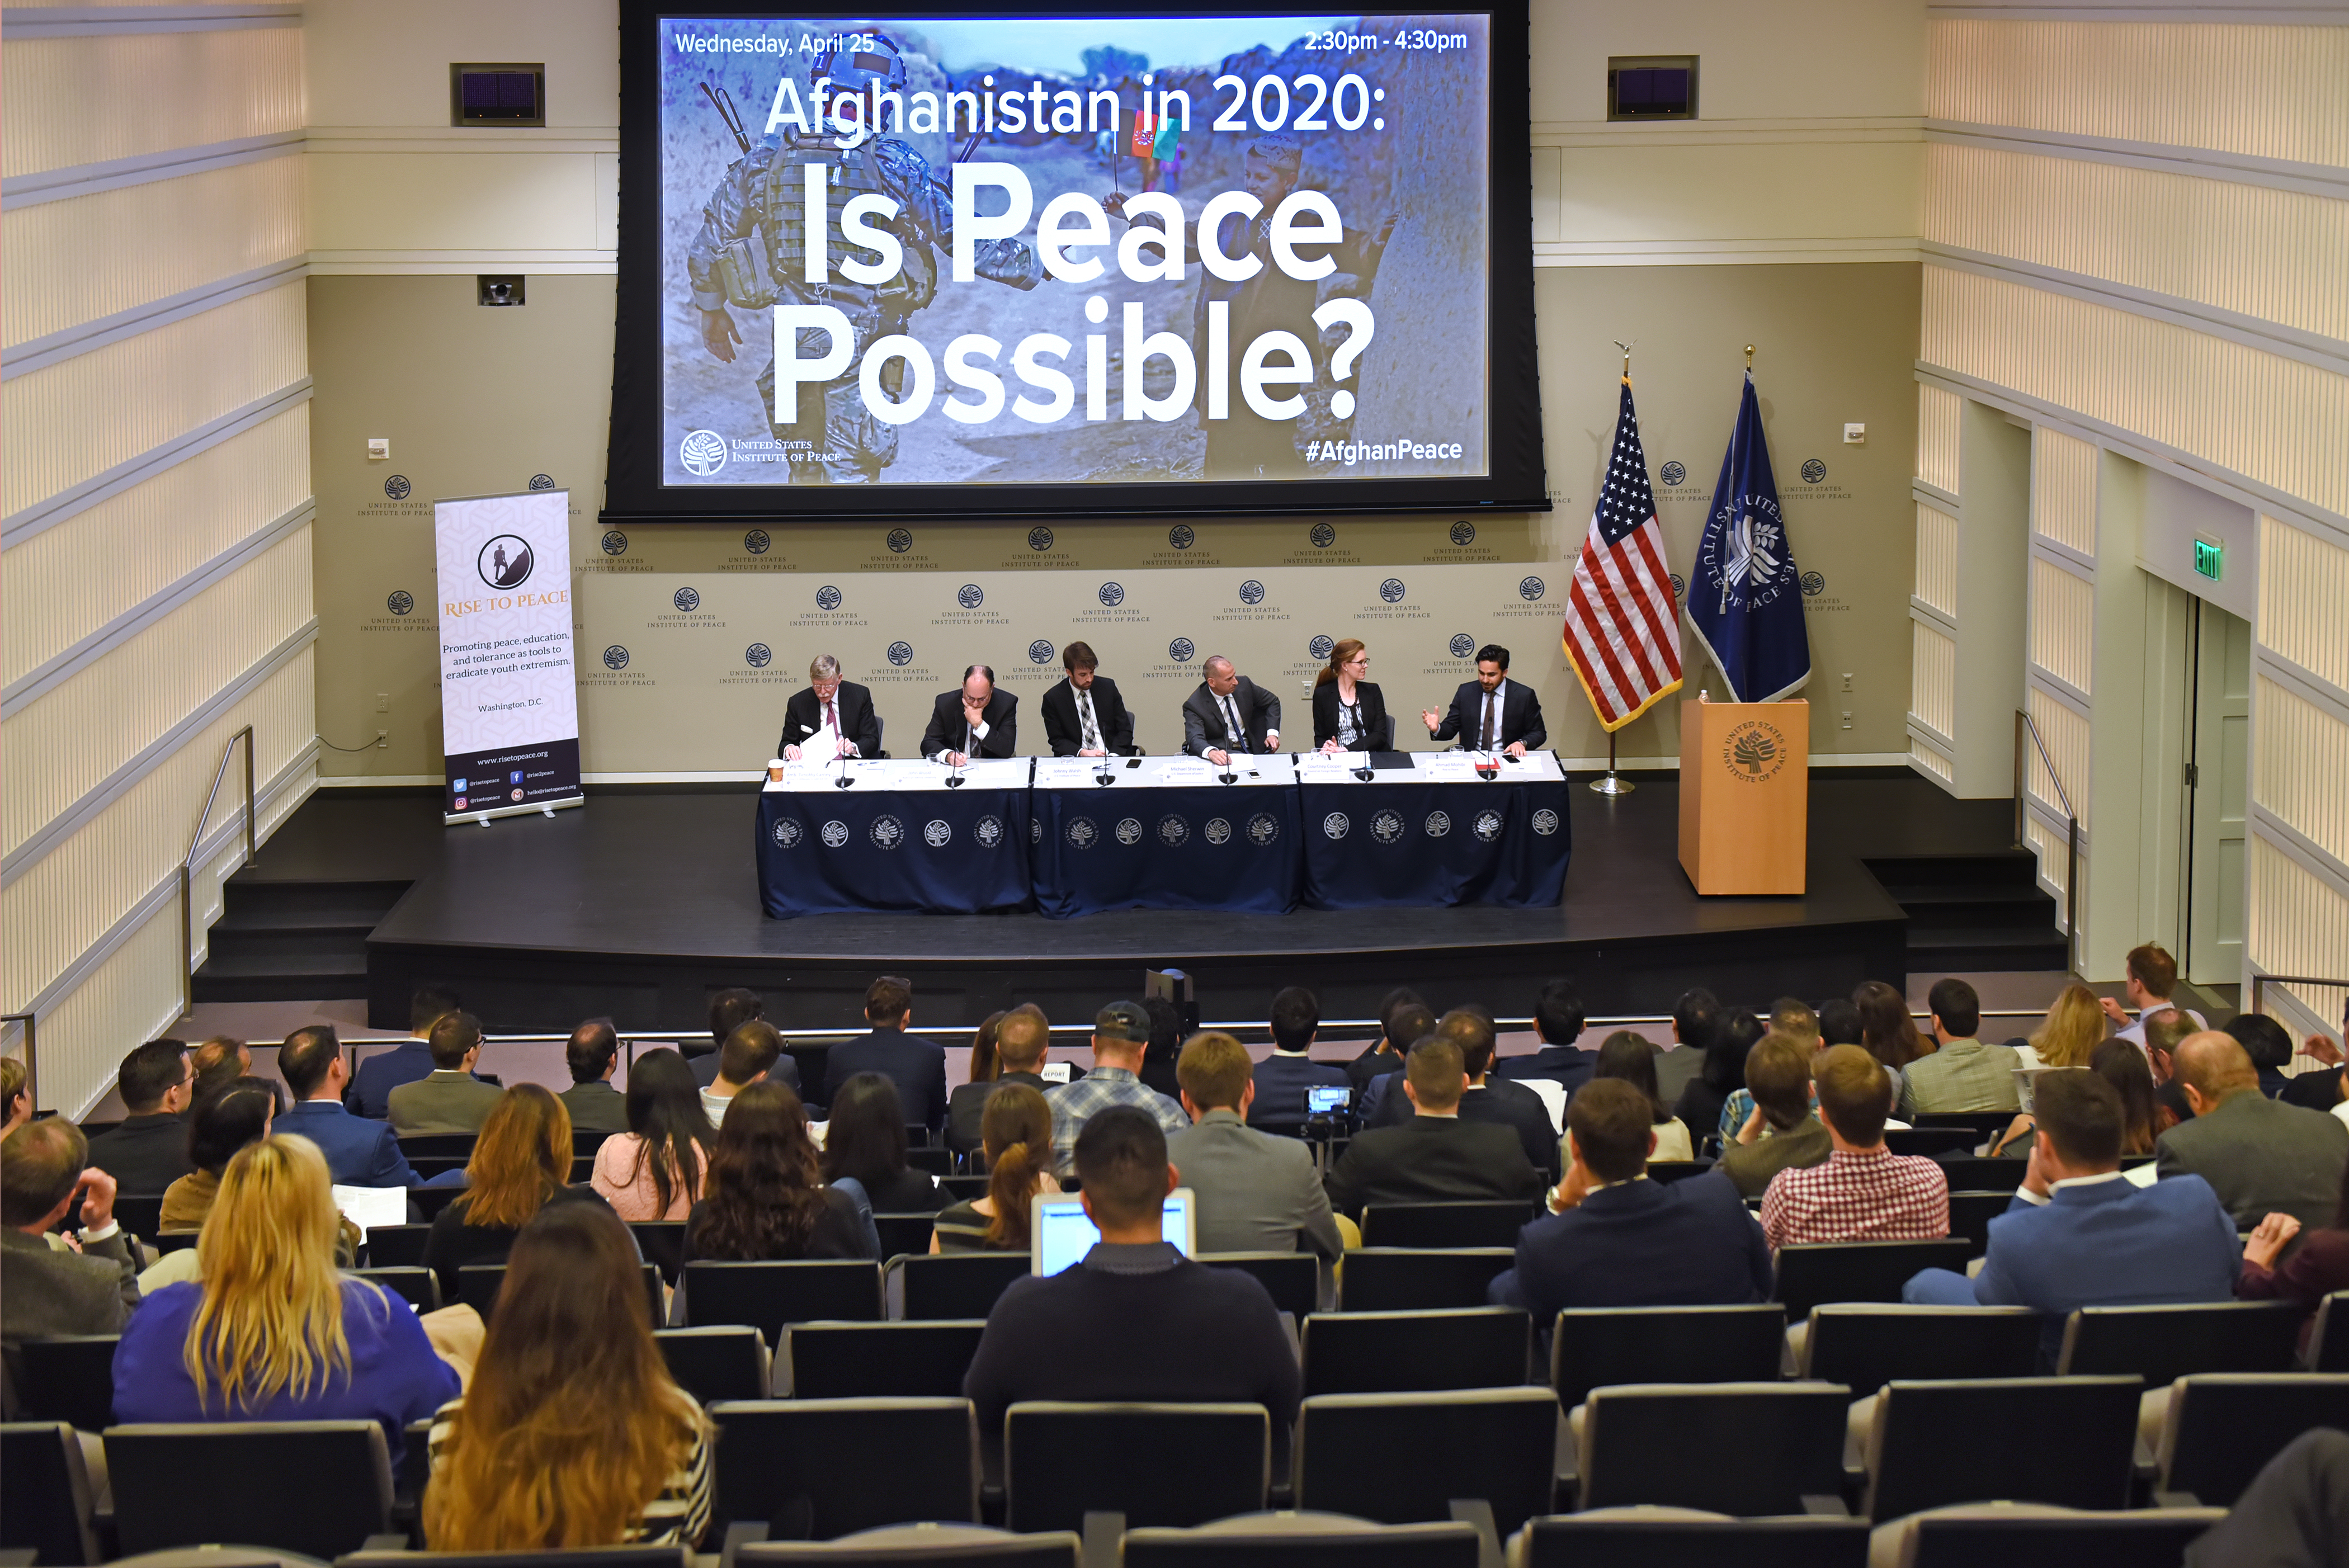 US Institute of Peace conference on Afghanistan Peace prospects, CC BY 2.0